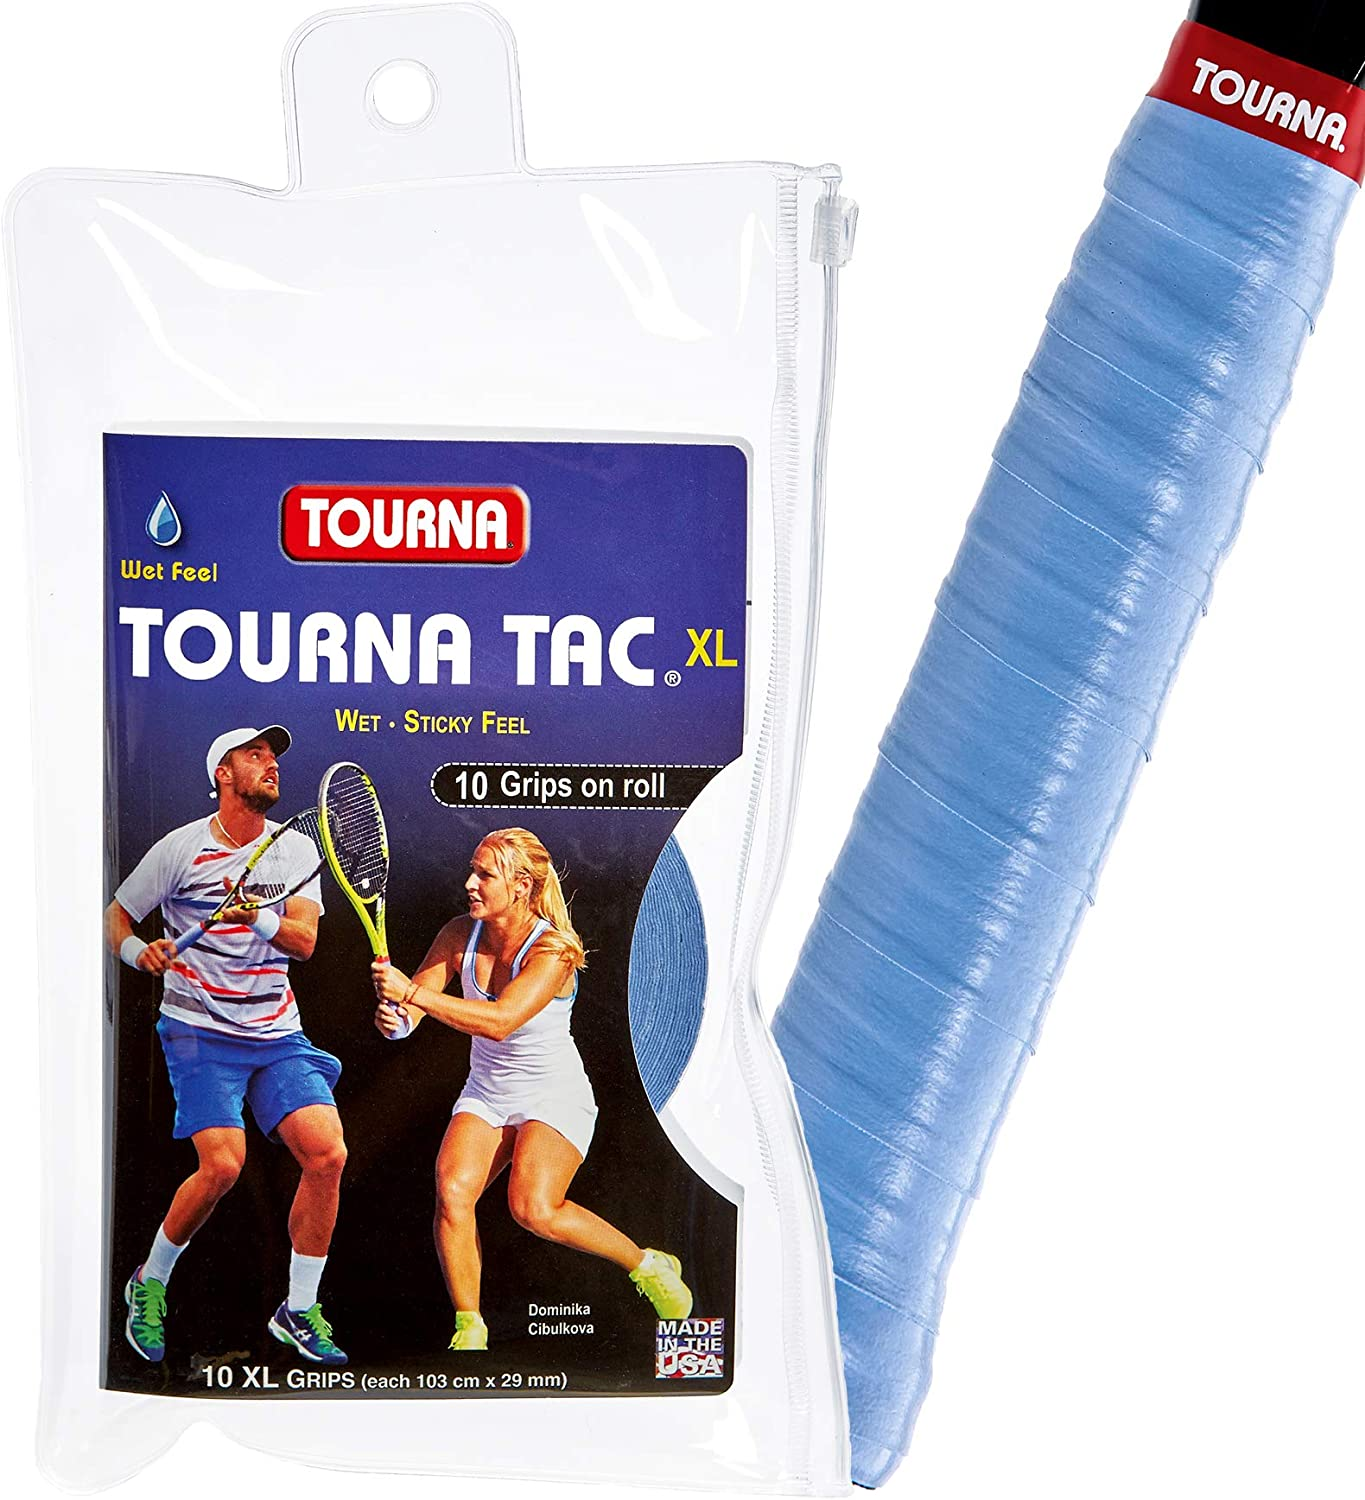 Tourna Tac Tennis Racquet Over Grip 10 XL Durable Overgrips Absorbent Tacky Feel